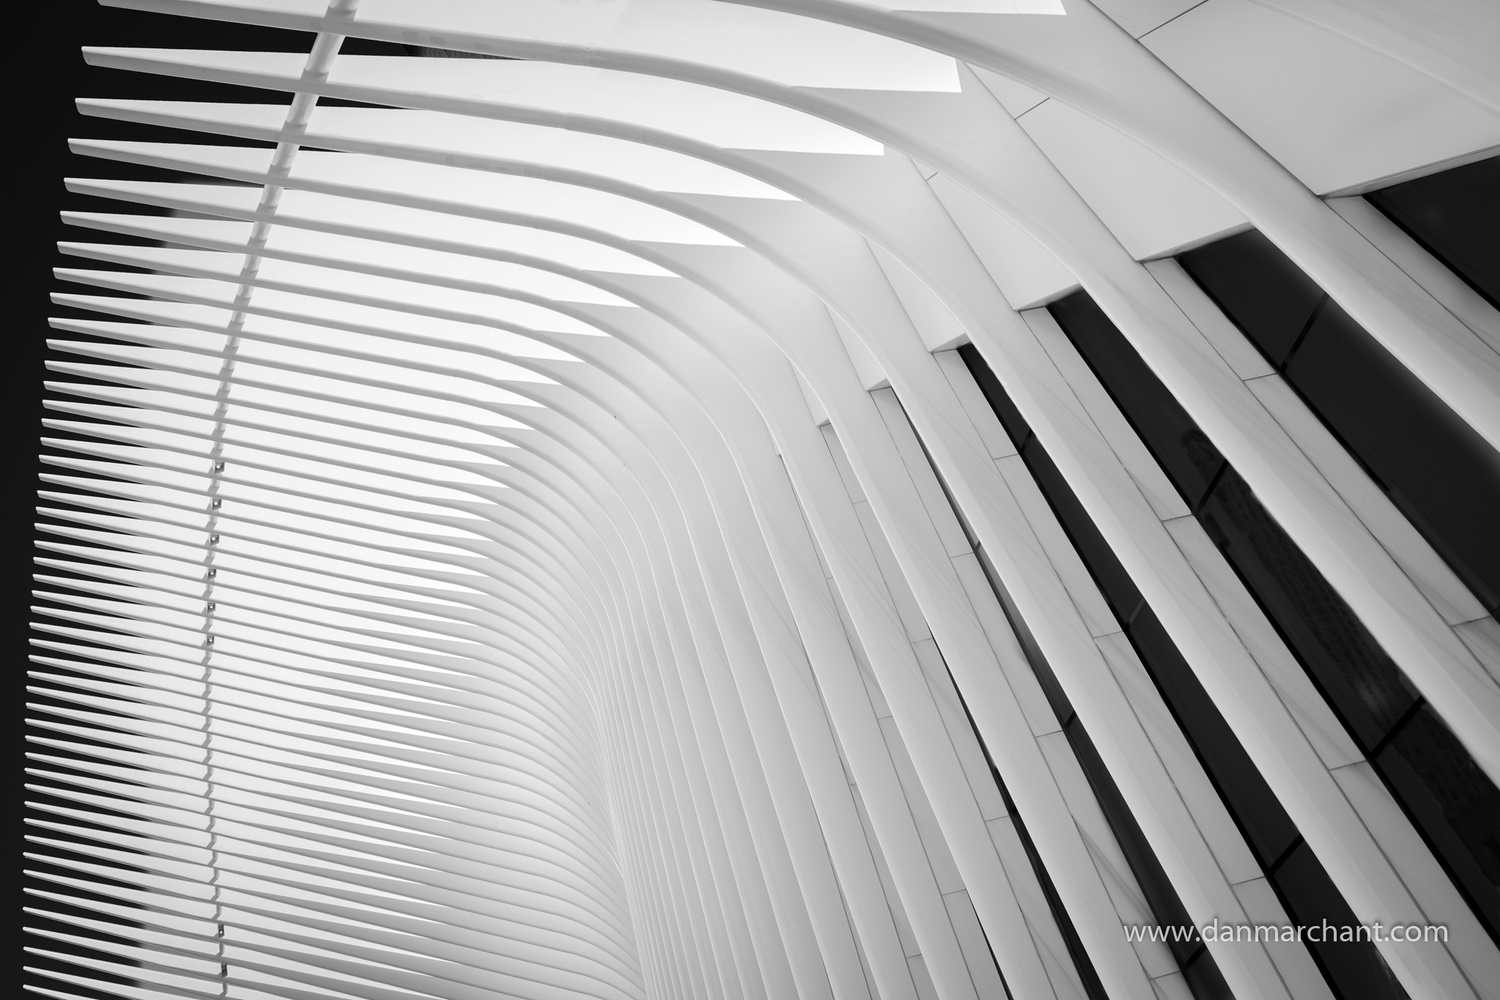 The Oculus by Dan Marchant